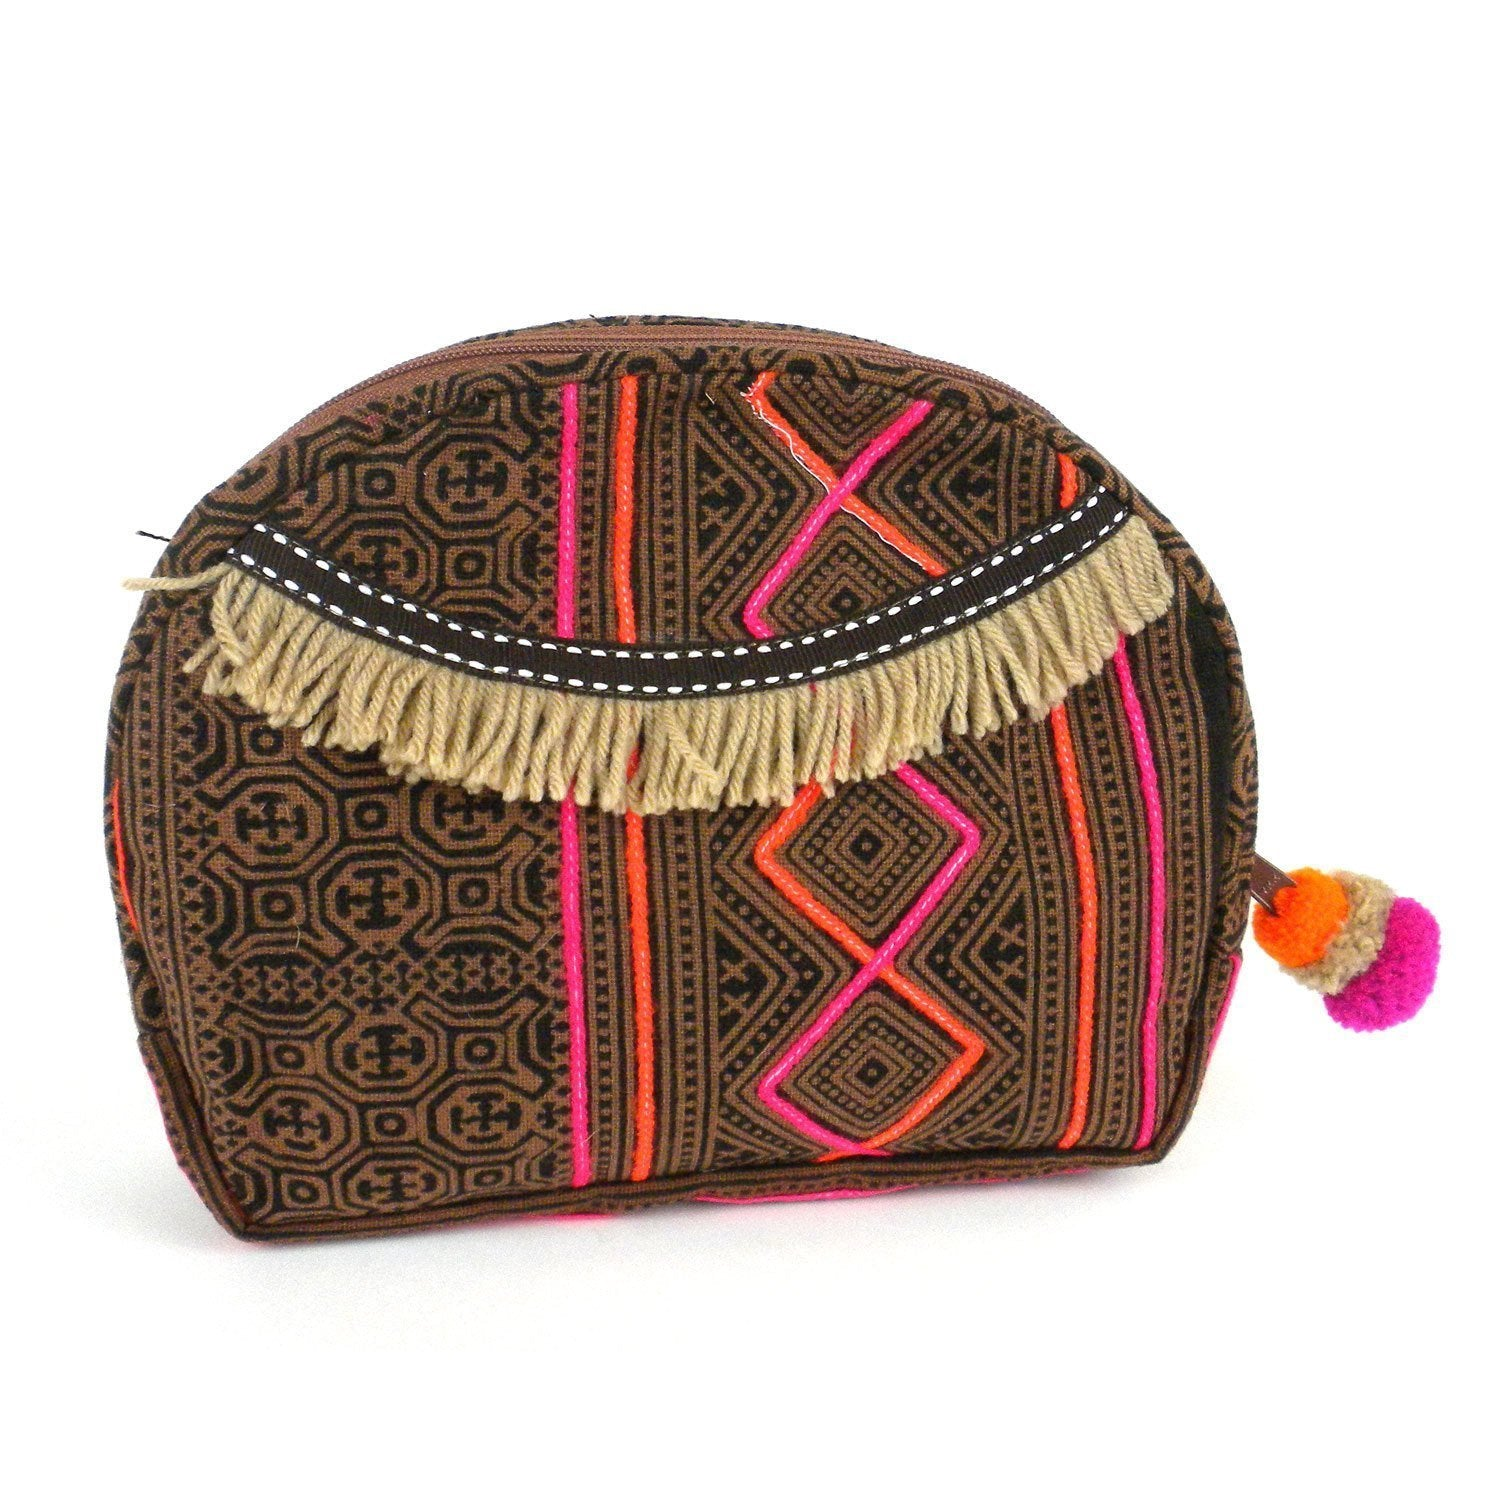 Hmong Batik Cosmetic Bag - Earth